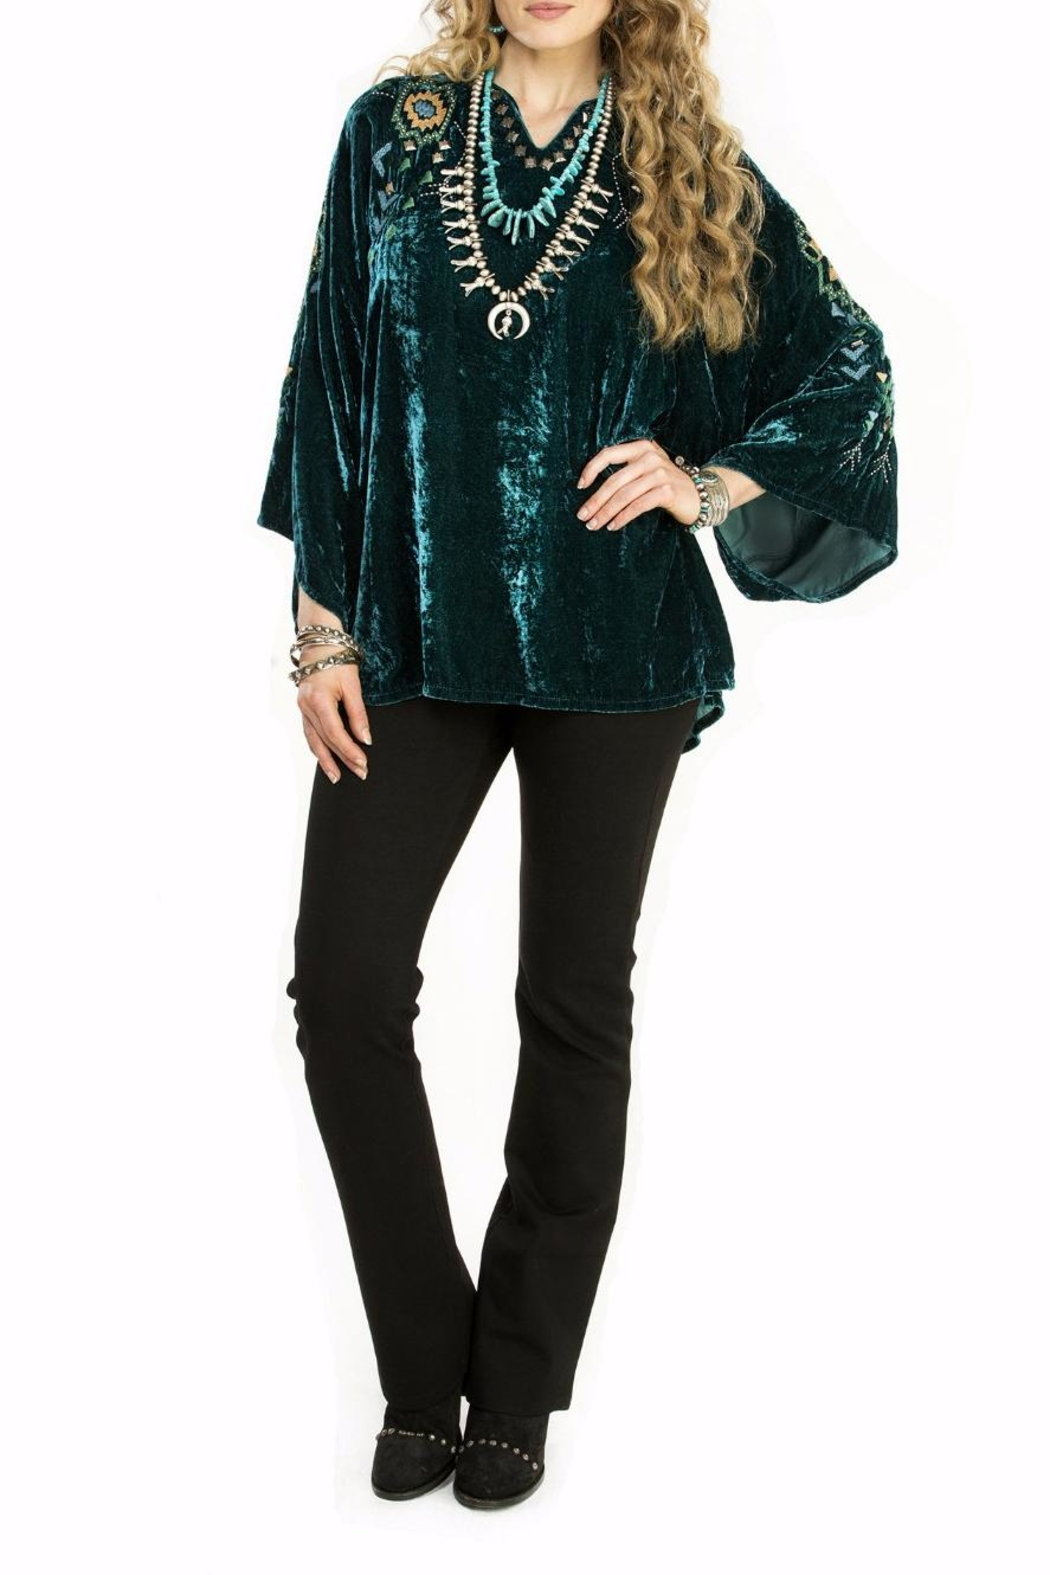 Double D Ranchwear Velvet Poncho Tunic Top - Main Image